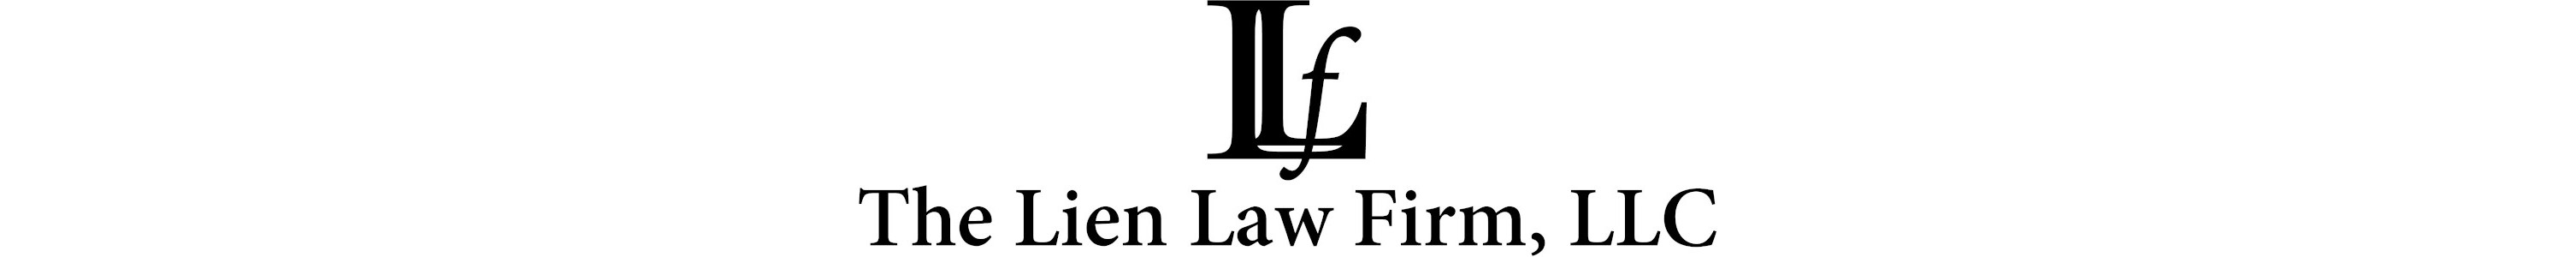 The Lien Law Firm, LLC